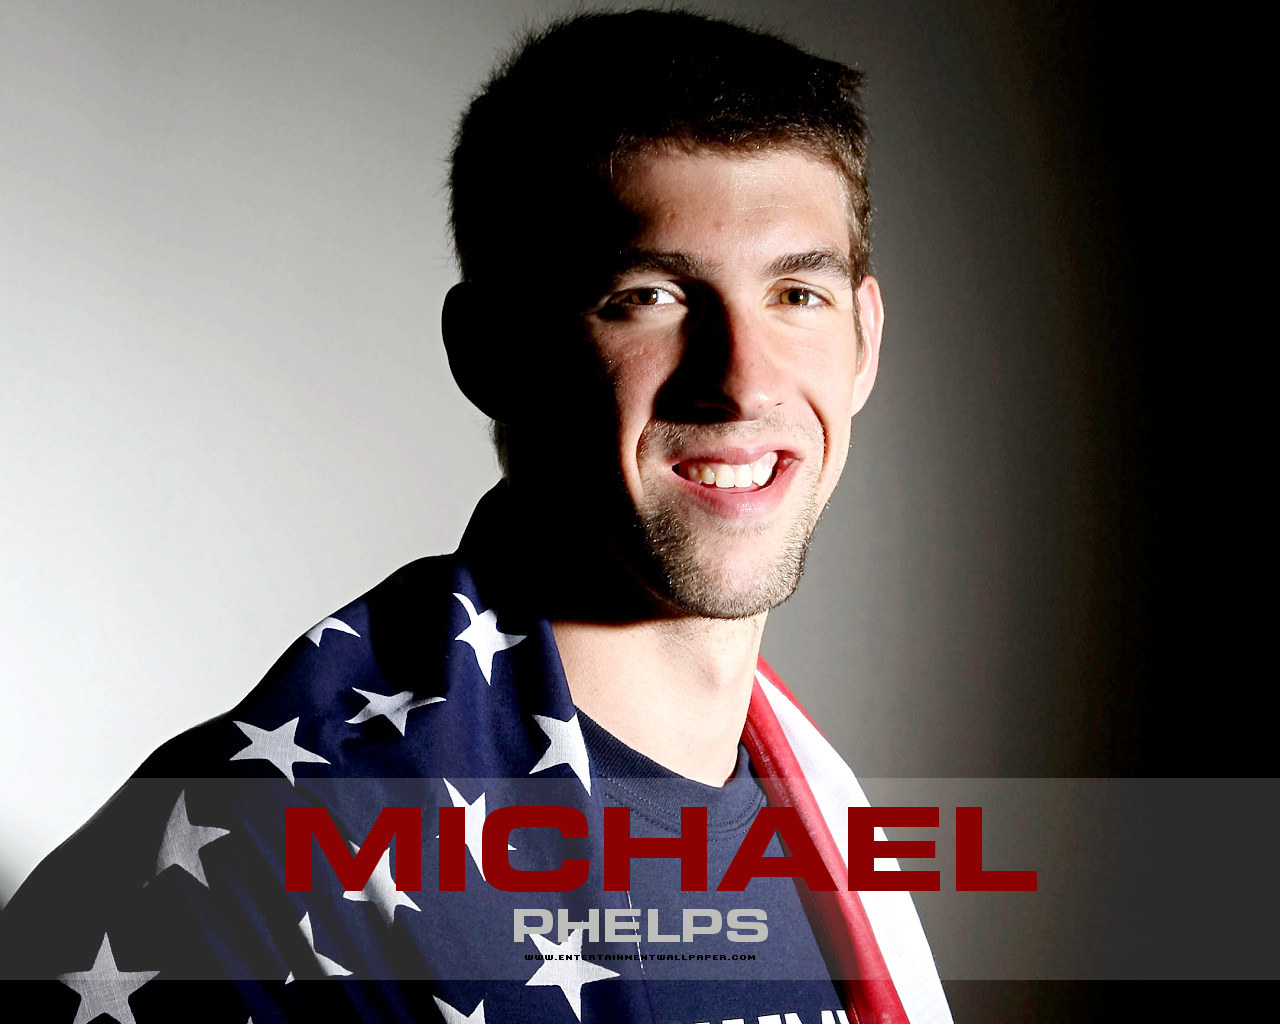 galerry michael phelps medals wallpaper